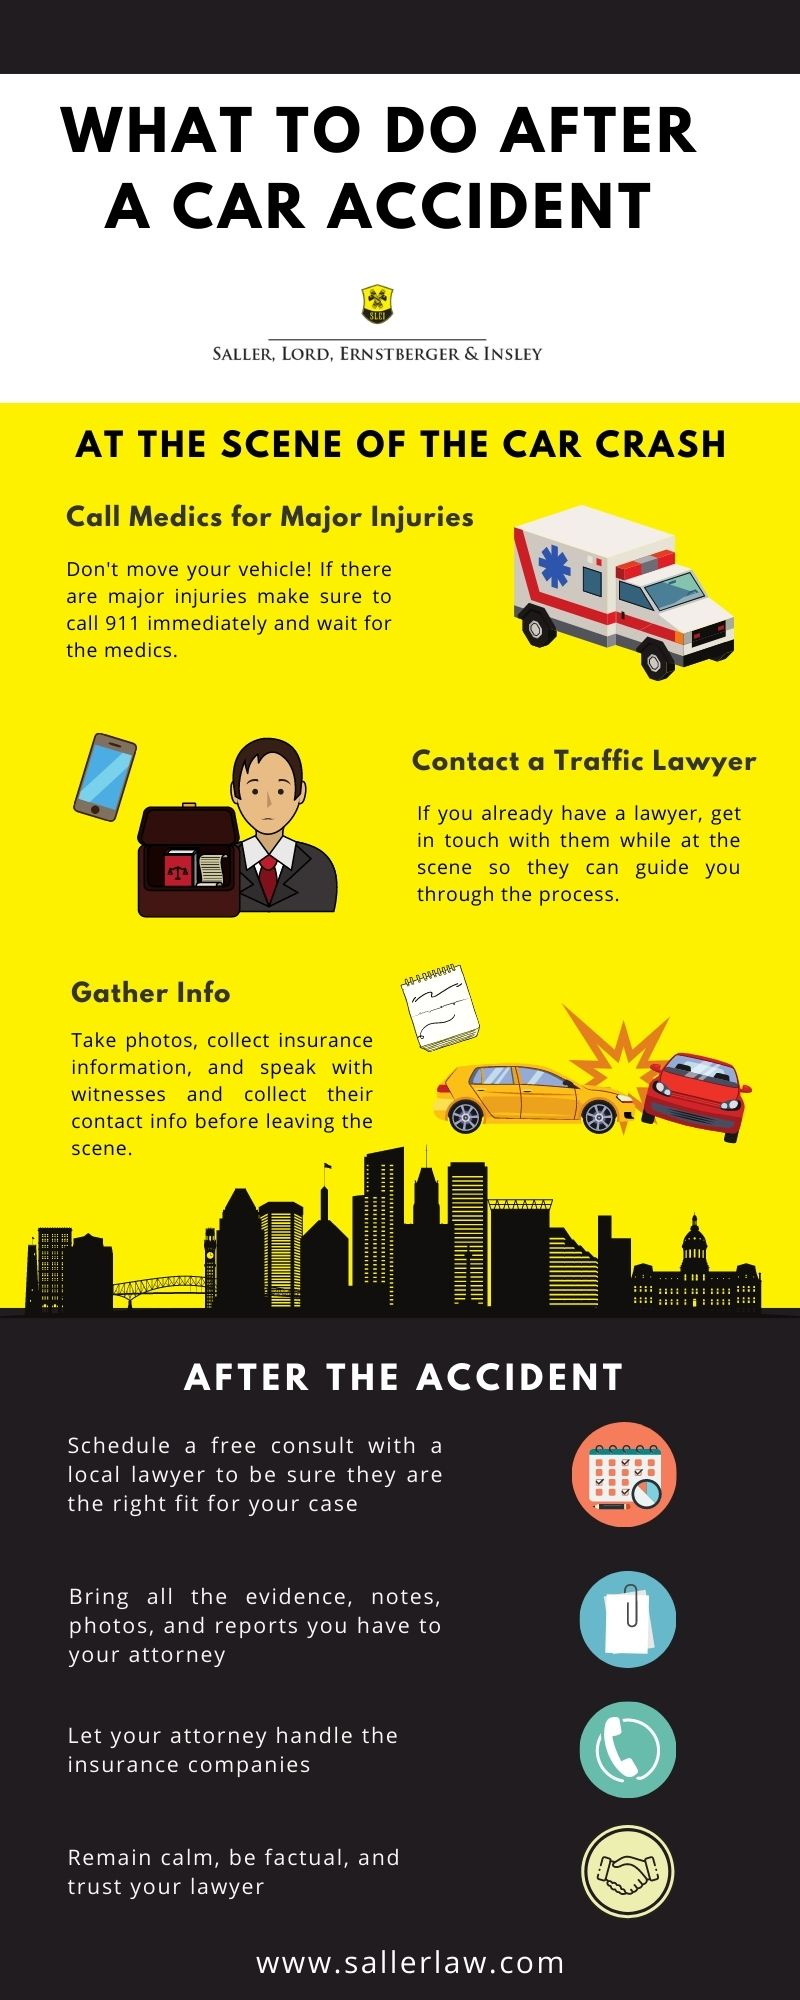 what to do after a car accident infographic from saller law in baltimore